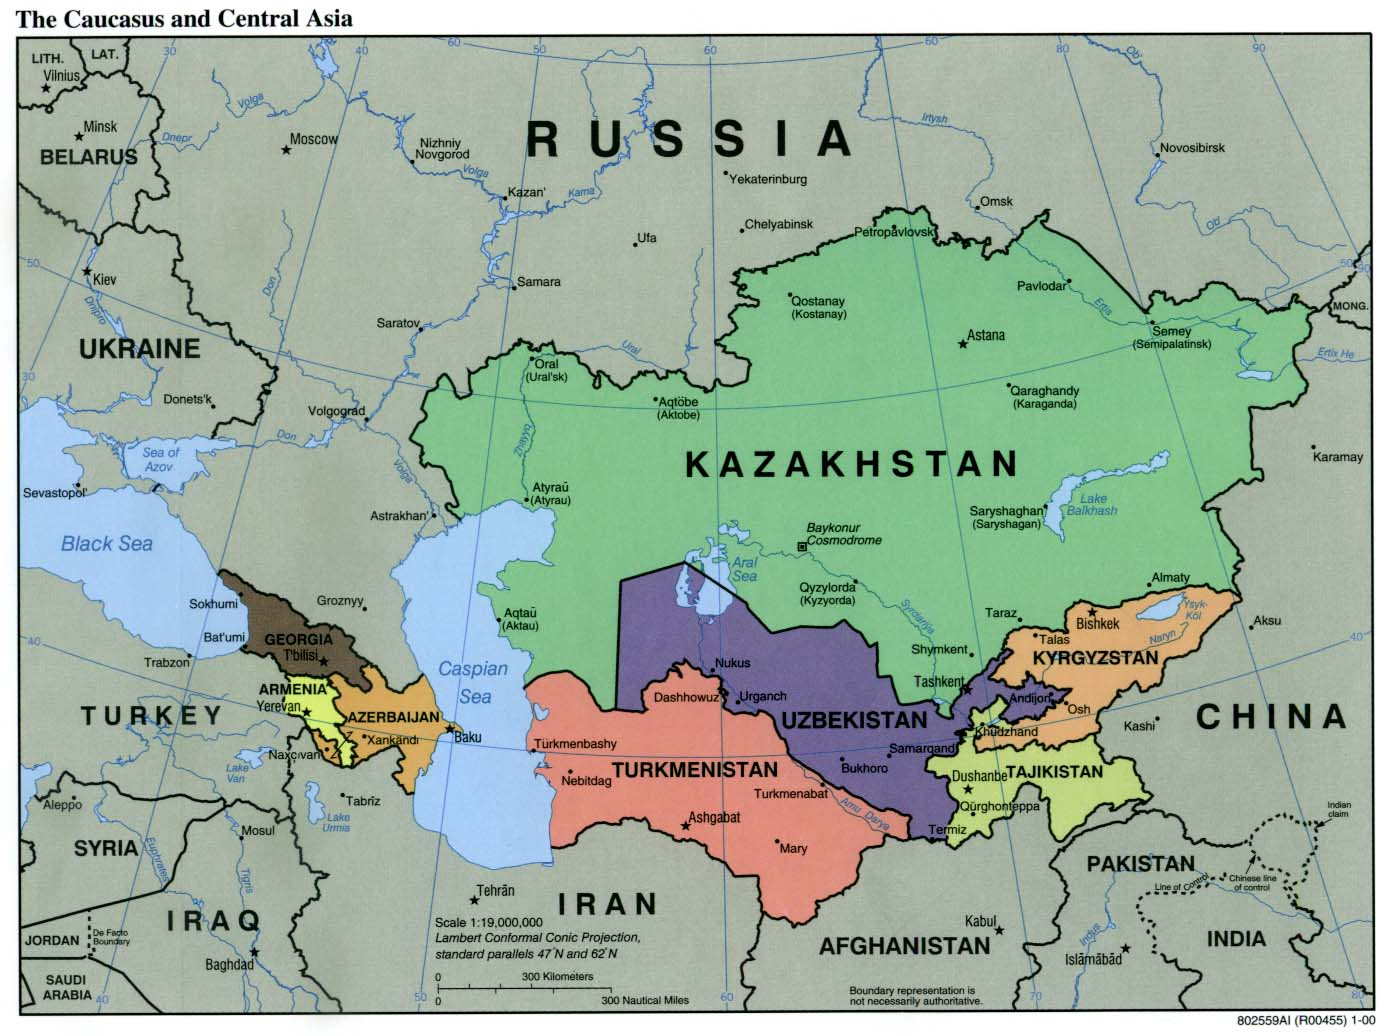 Caucasus Central Asia Political Map 2000 3